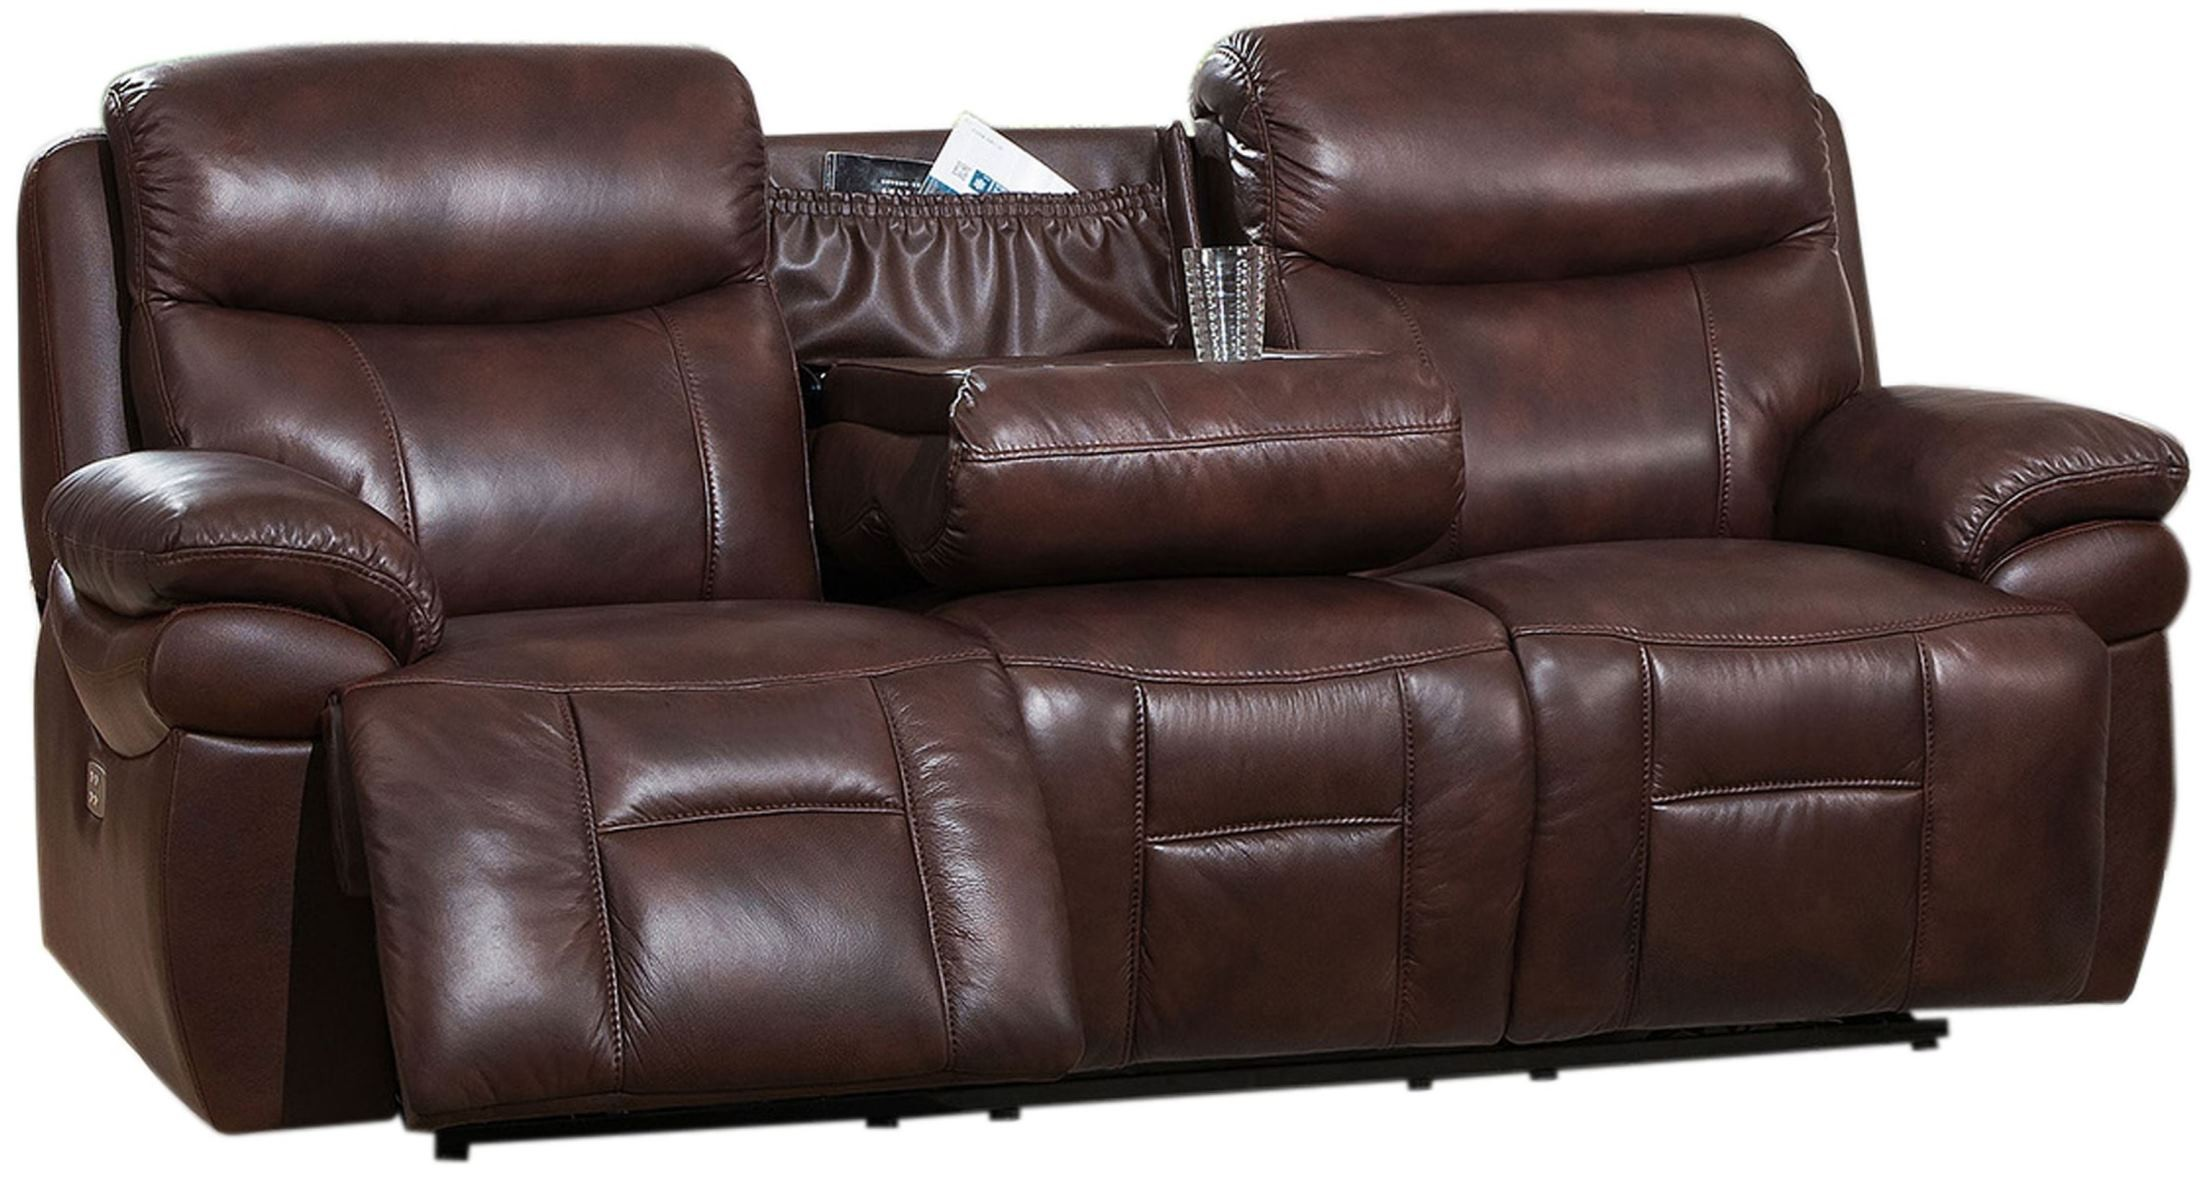 Summerlands Ii Brown Adjustable Headrest Power Reclining Sofa With Dropdown Table From Amax